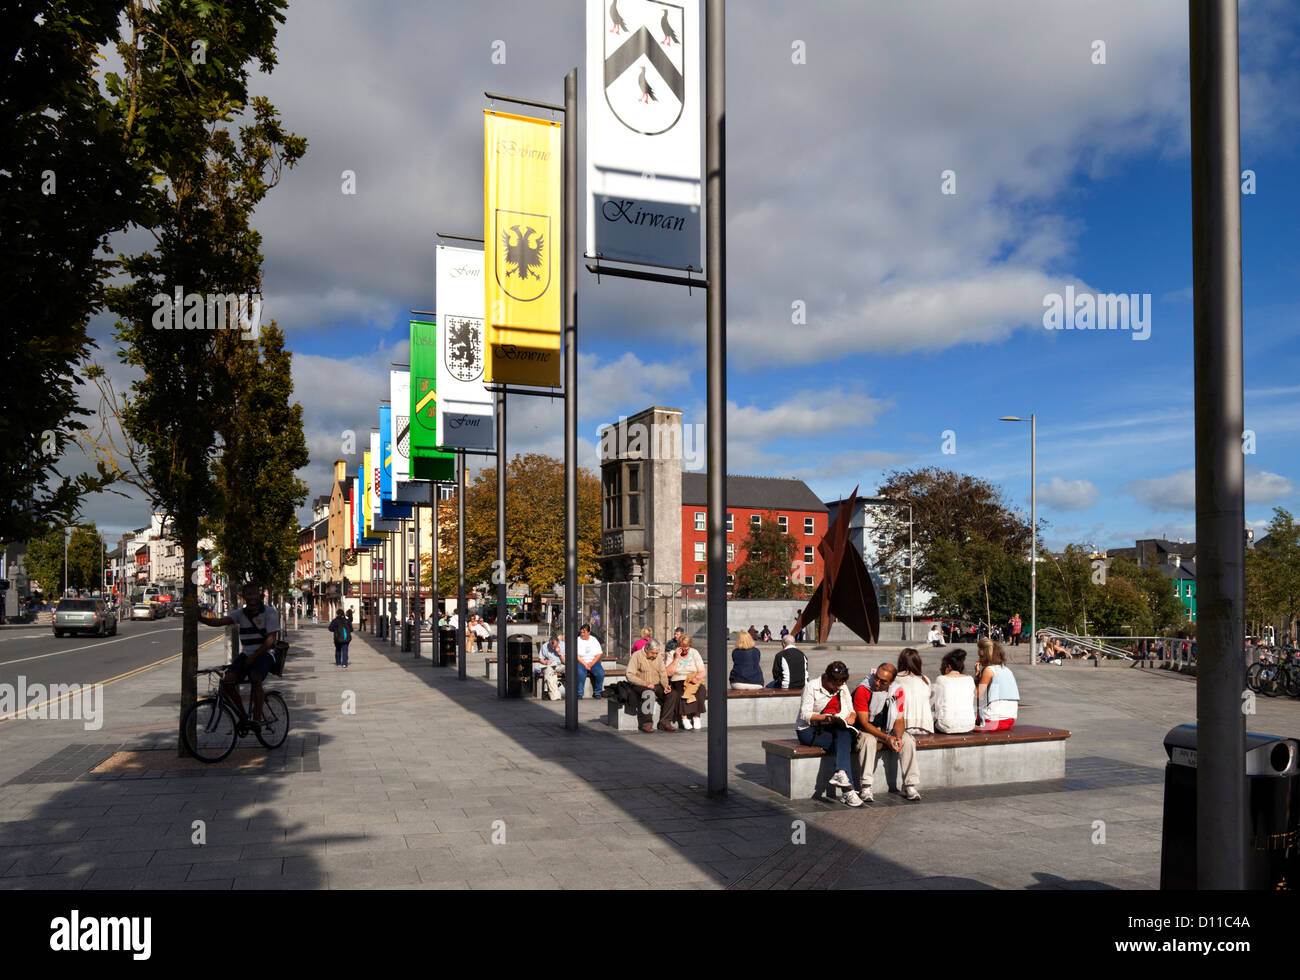 Galway family banners lining Kennedy Park in Eyre Square, Galway City, Ireland - Stock Image